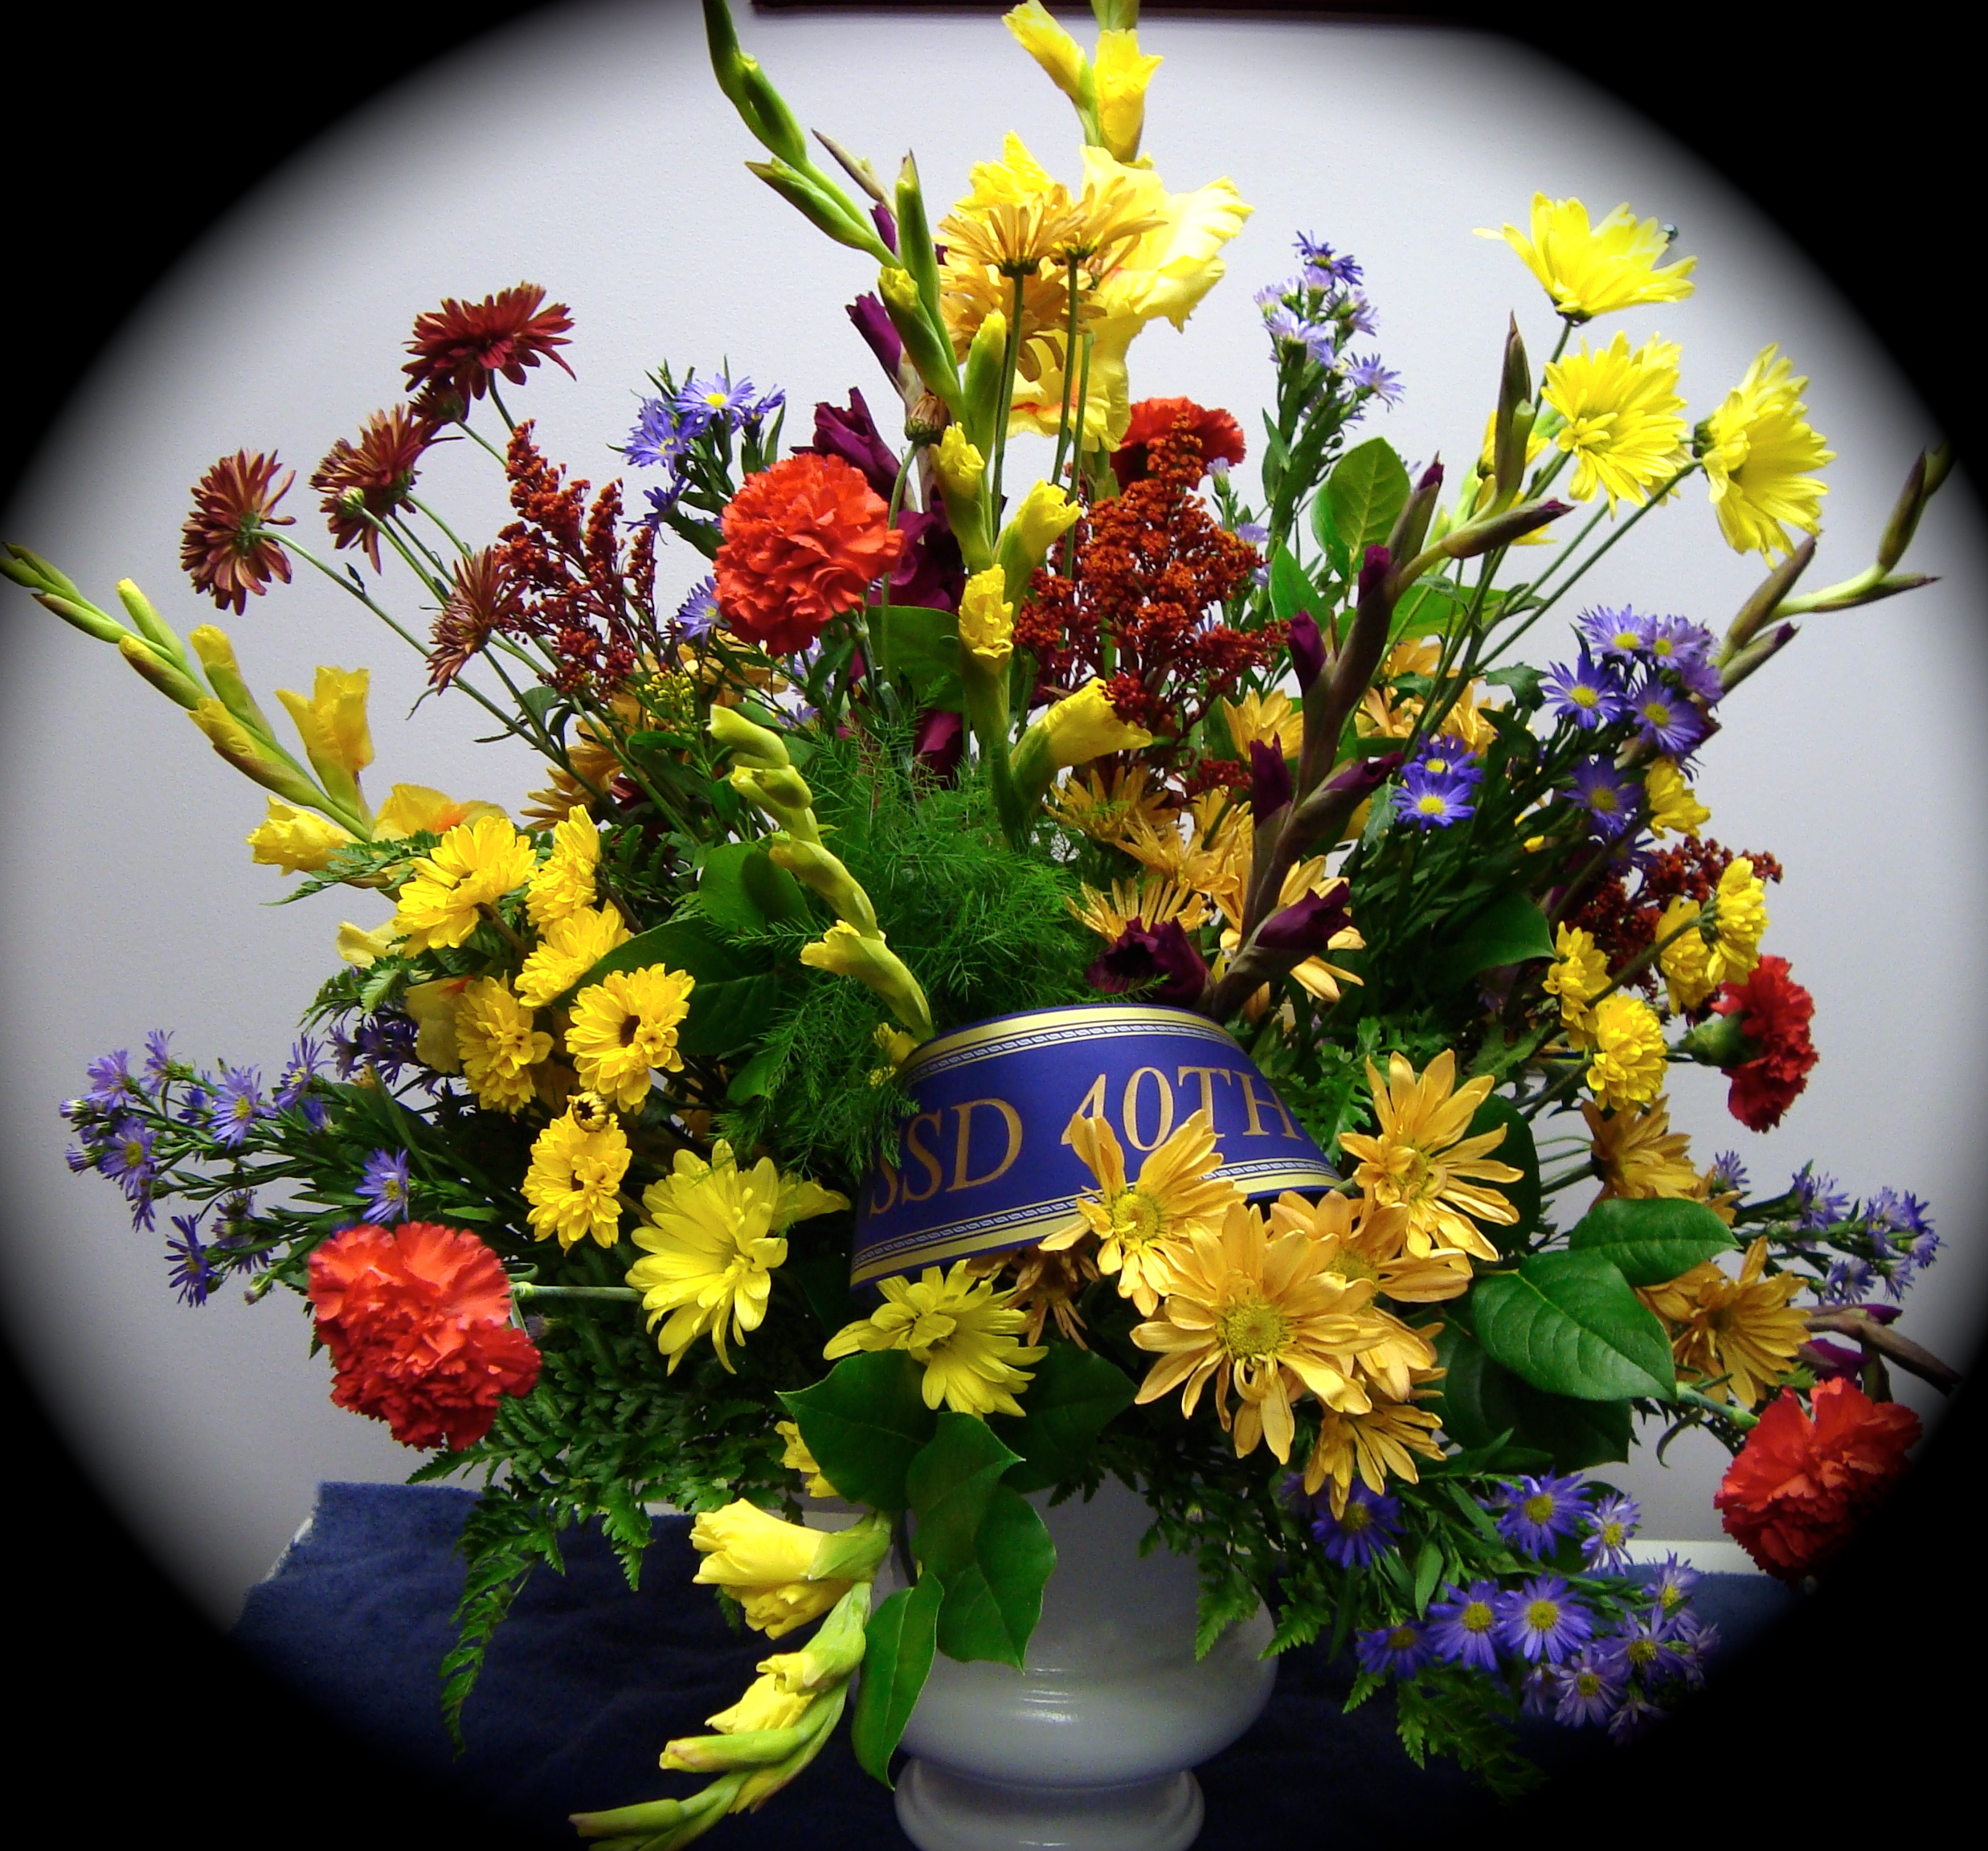 40th wedding anniversary flowers services for students with disabilities 1120